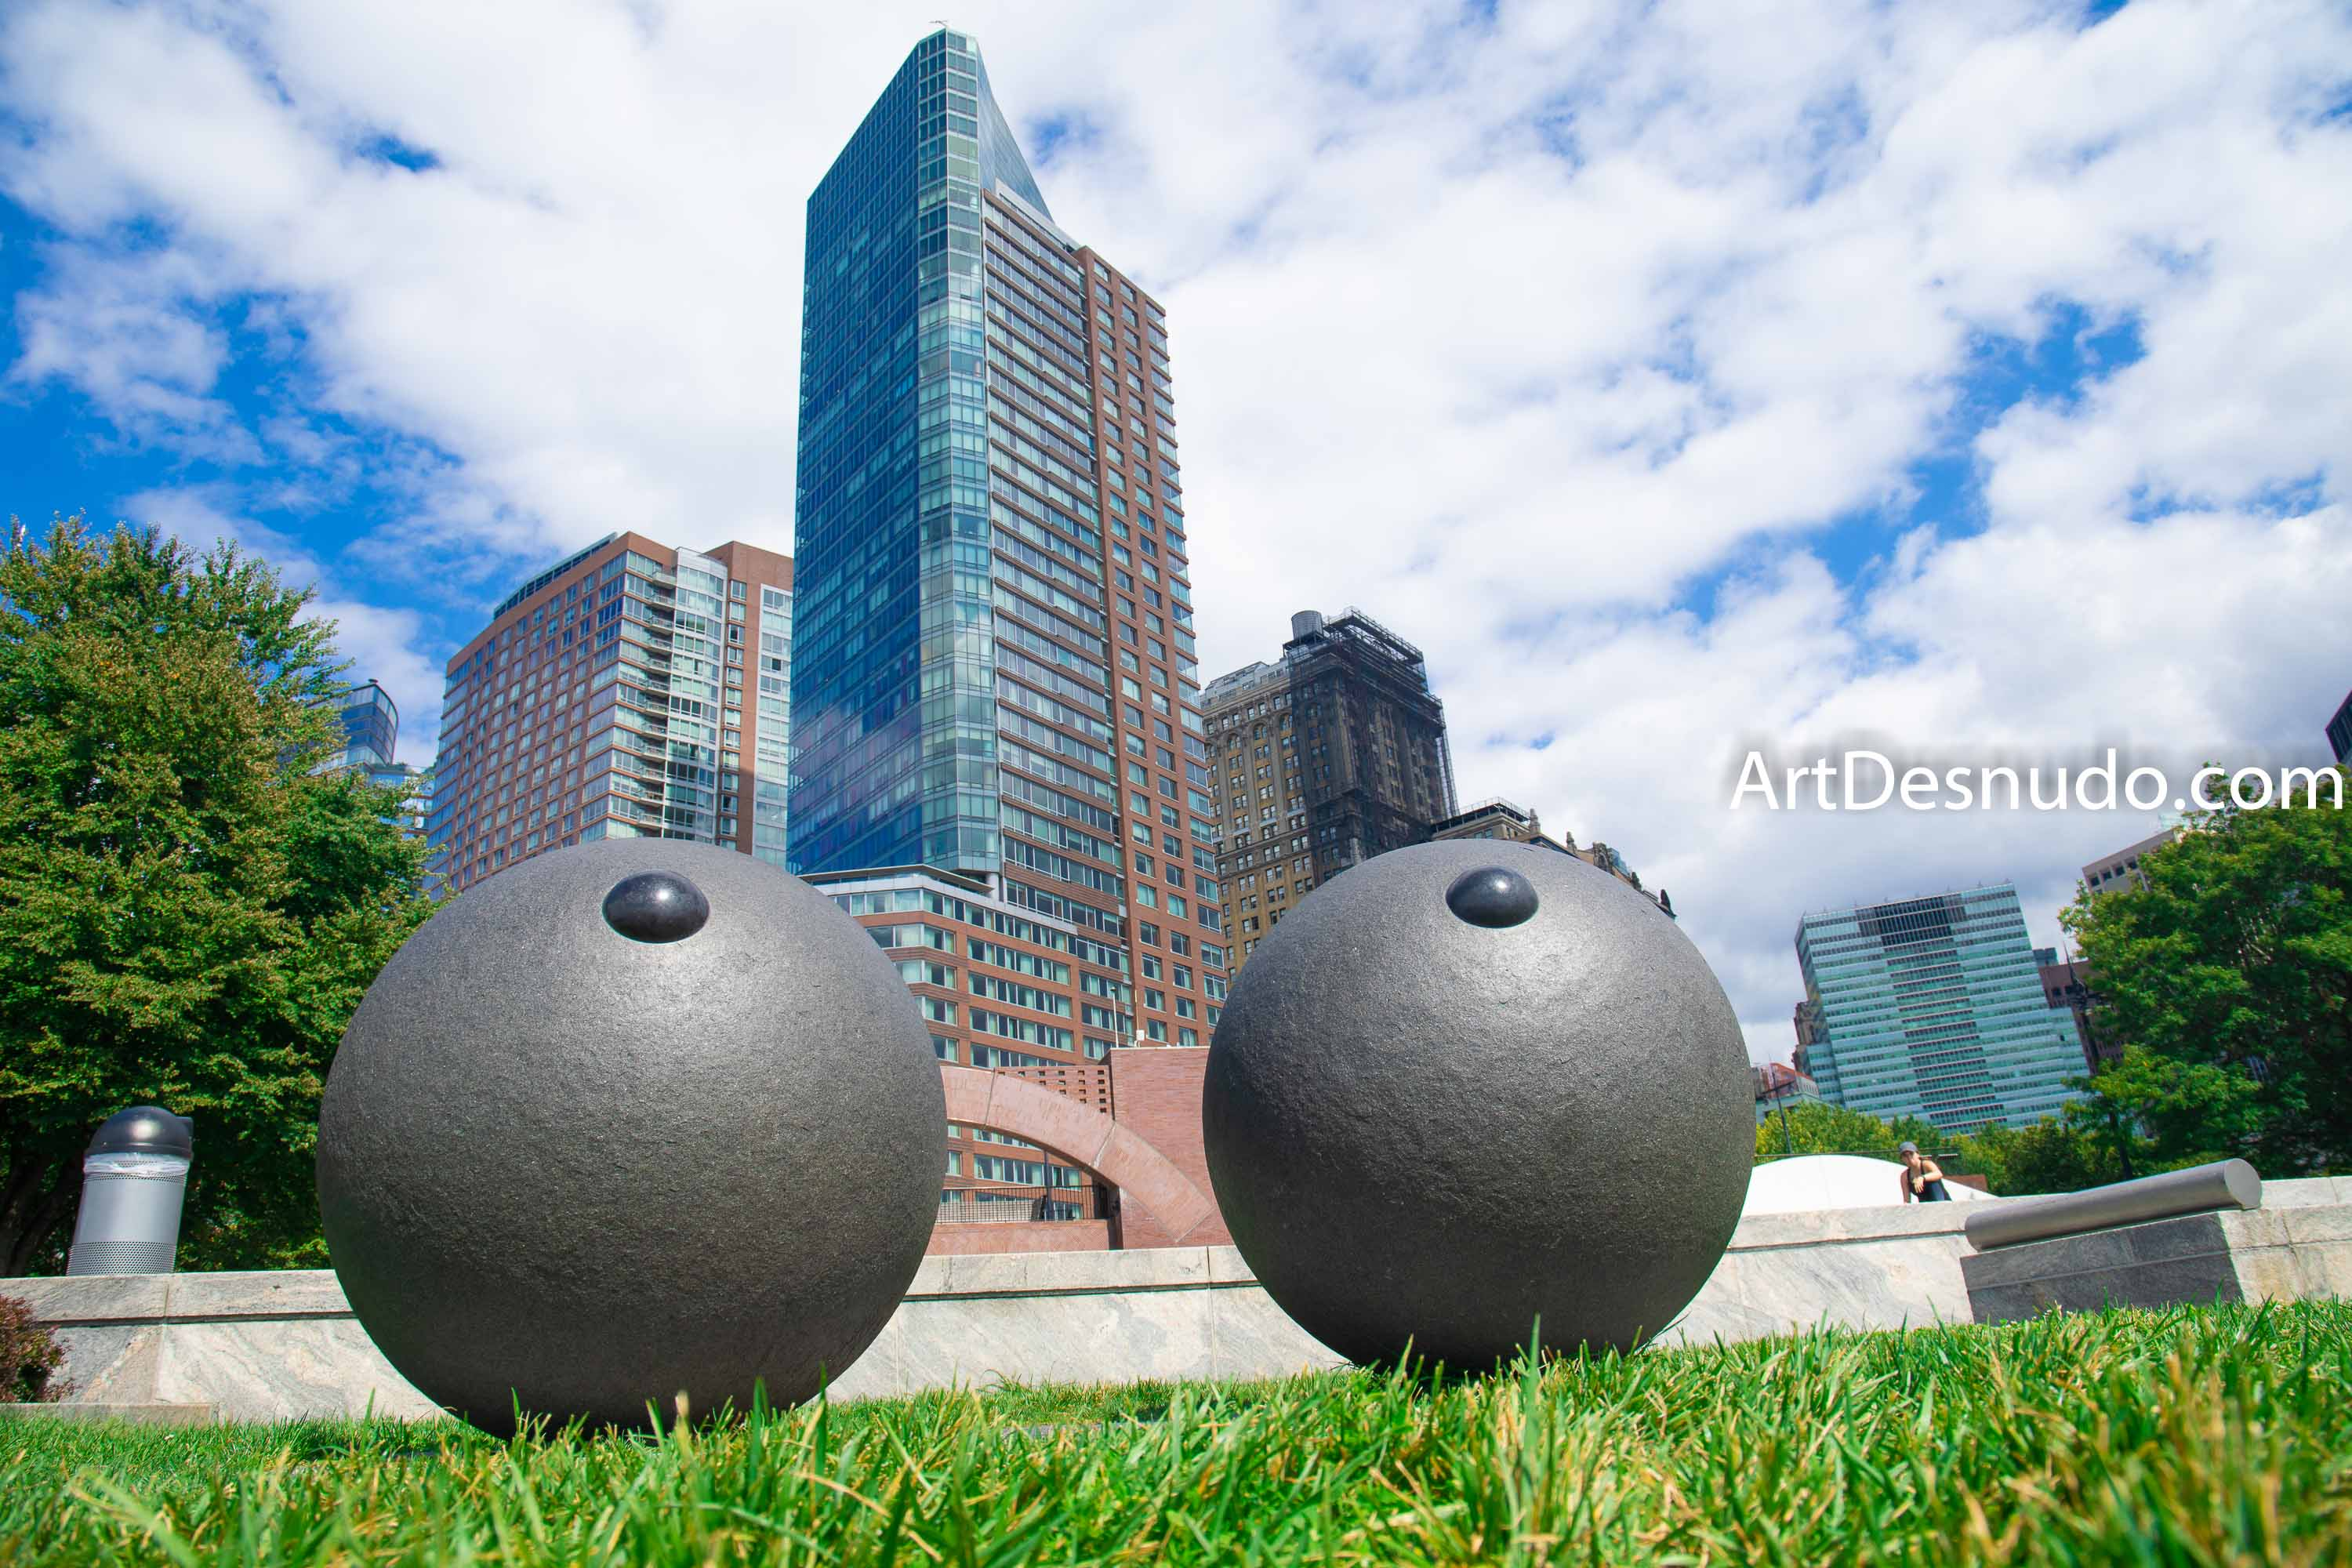 Saturday, September 7, 2019 - Sculpture EYES by Louise Bourgeois at Battery Park City. Manhattan, New York City.